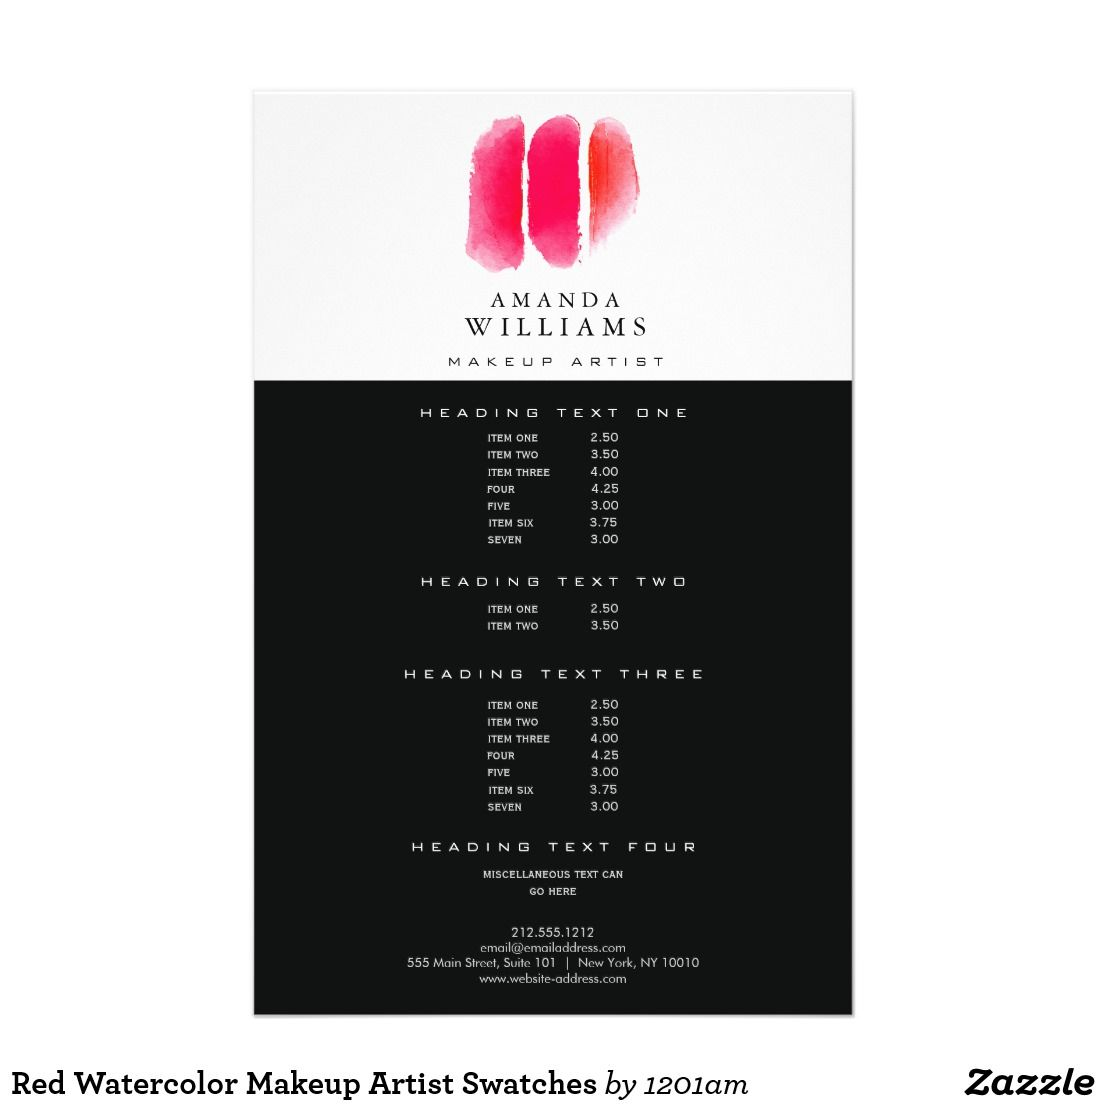 Red Watercolor Makeup Artist Swatches Flyer